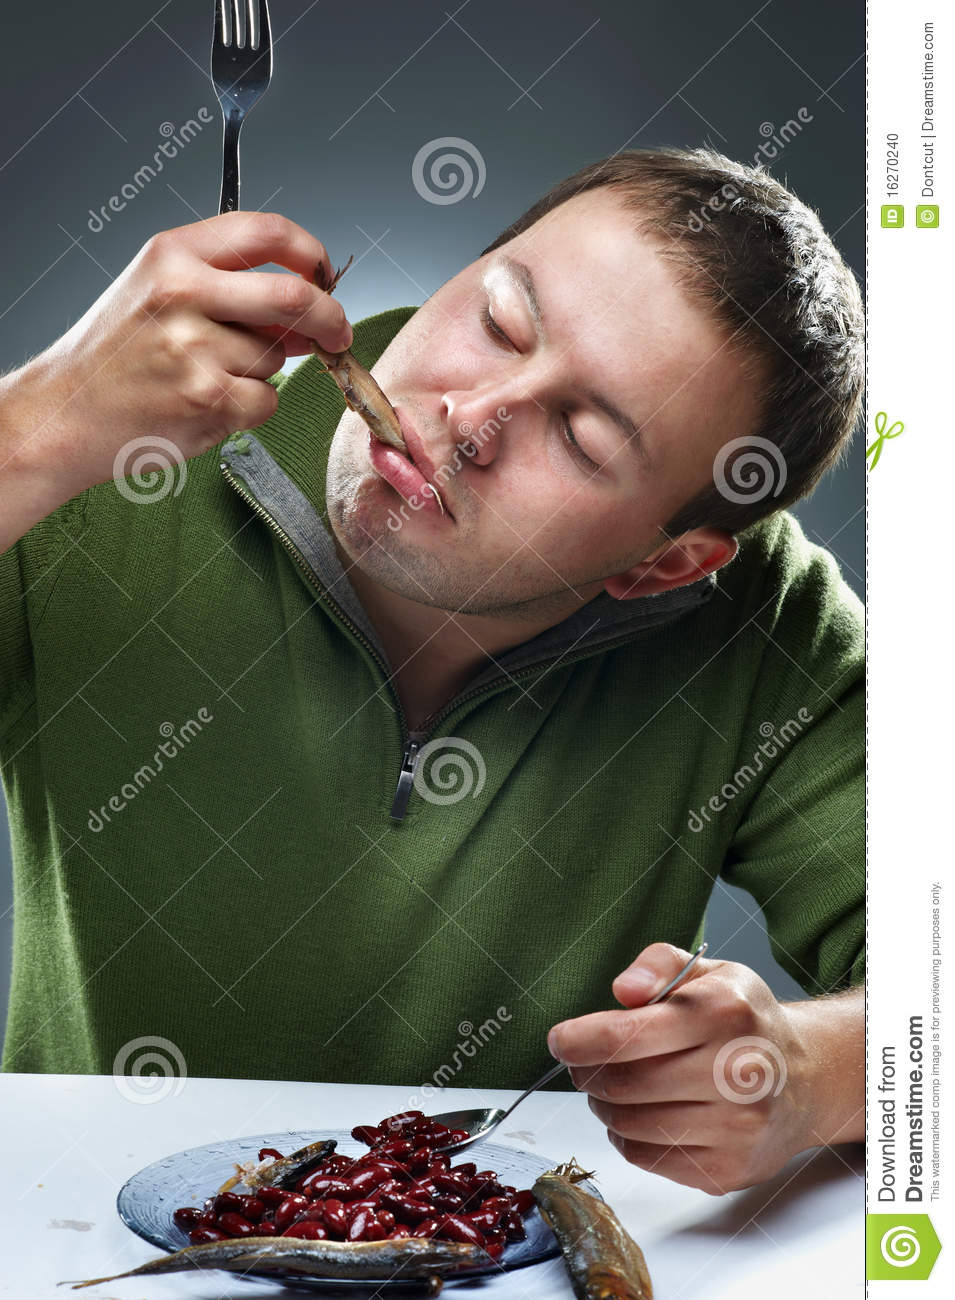 Fun portrait of man with fish in mouth royalty free stock for Dreaming of eating fish